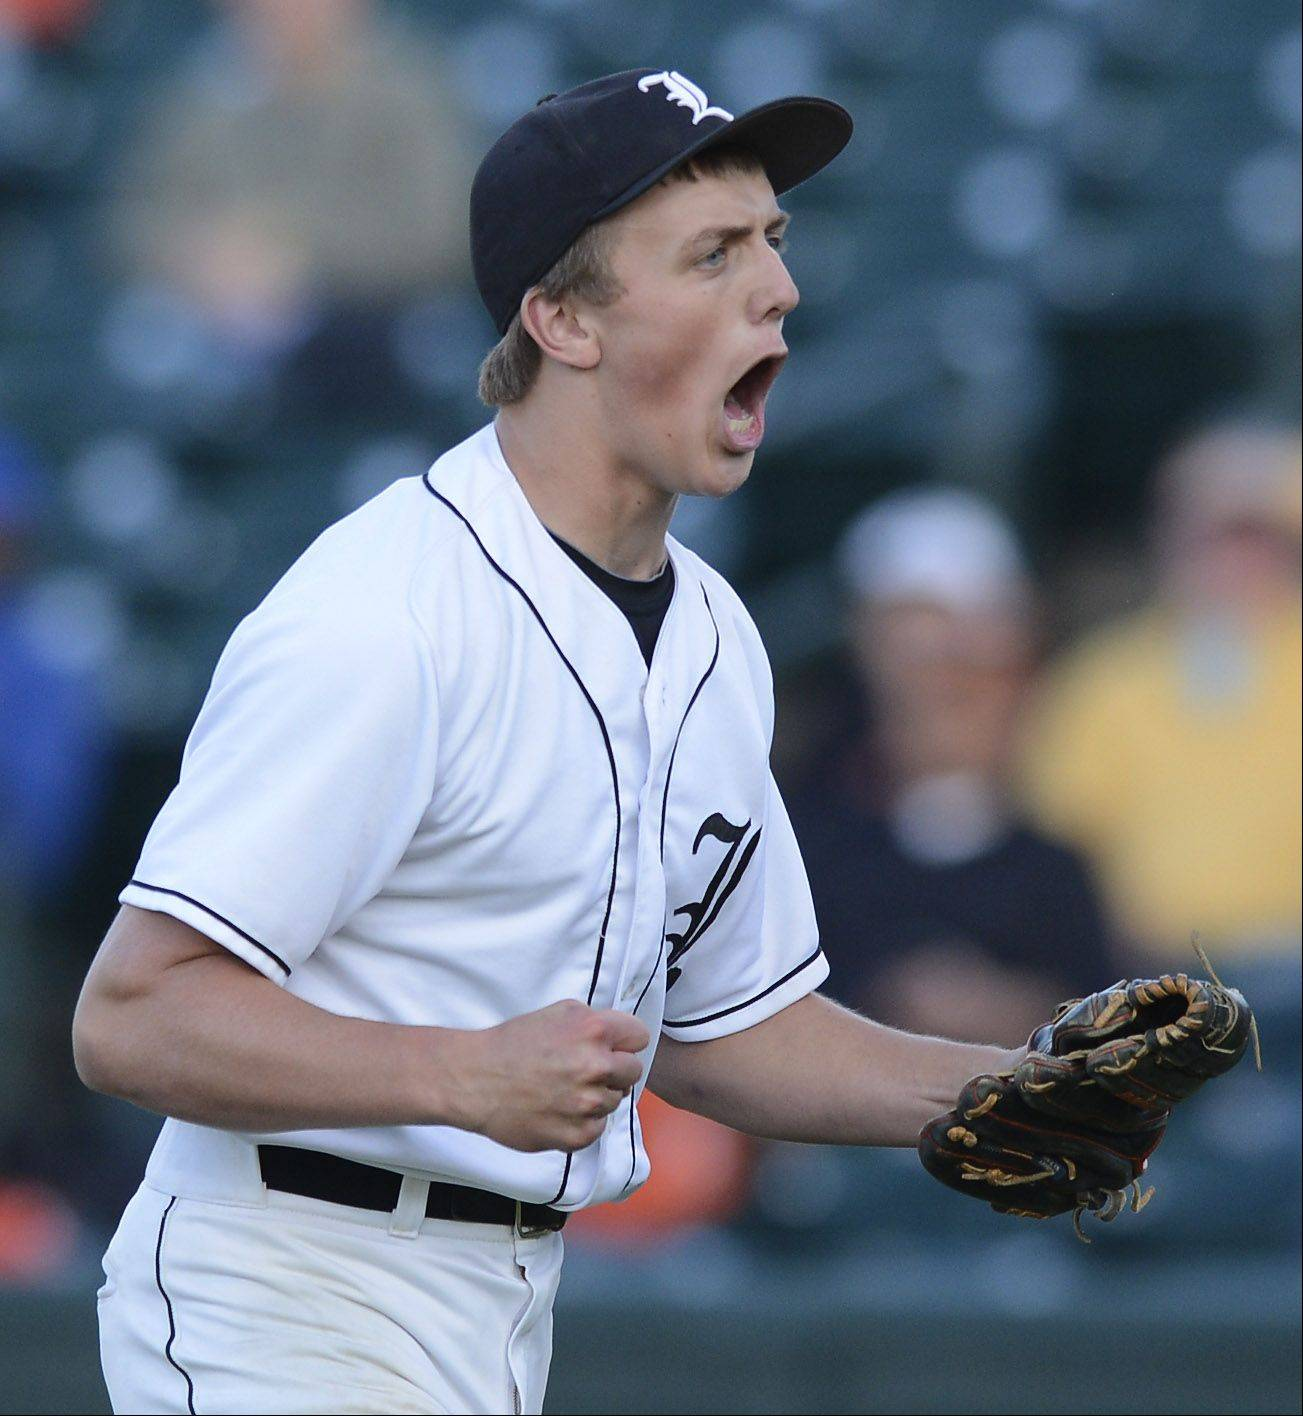 Libertyville pitcher Kevin Calamari celebrates after closing his team's 9-6 victory over St. Charles East during the Class 4A state baseball semifinals at Silver Cross Field in Joliet Friday.